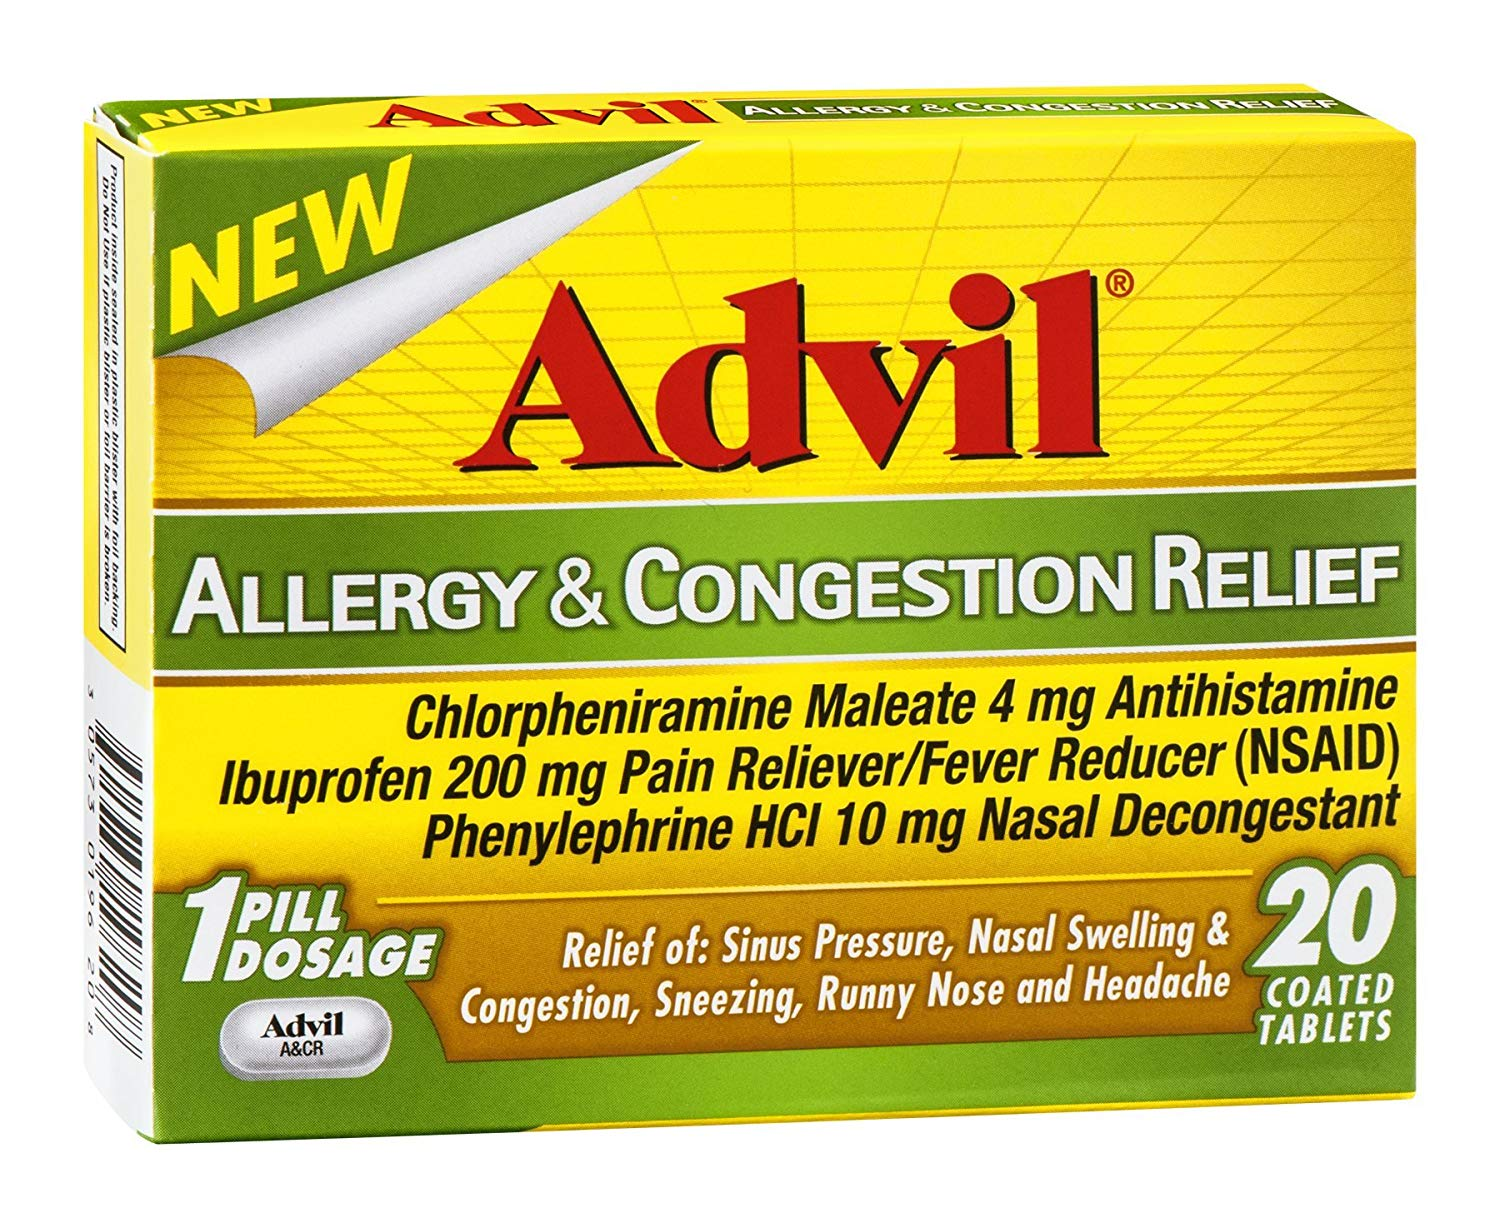 Advil Allergy & Congestion Relief - 20 Coated Tablets